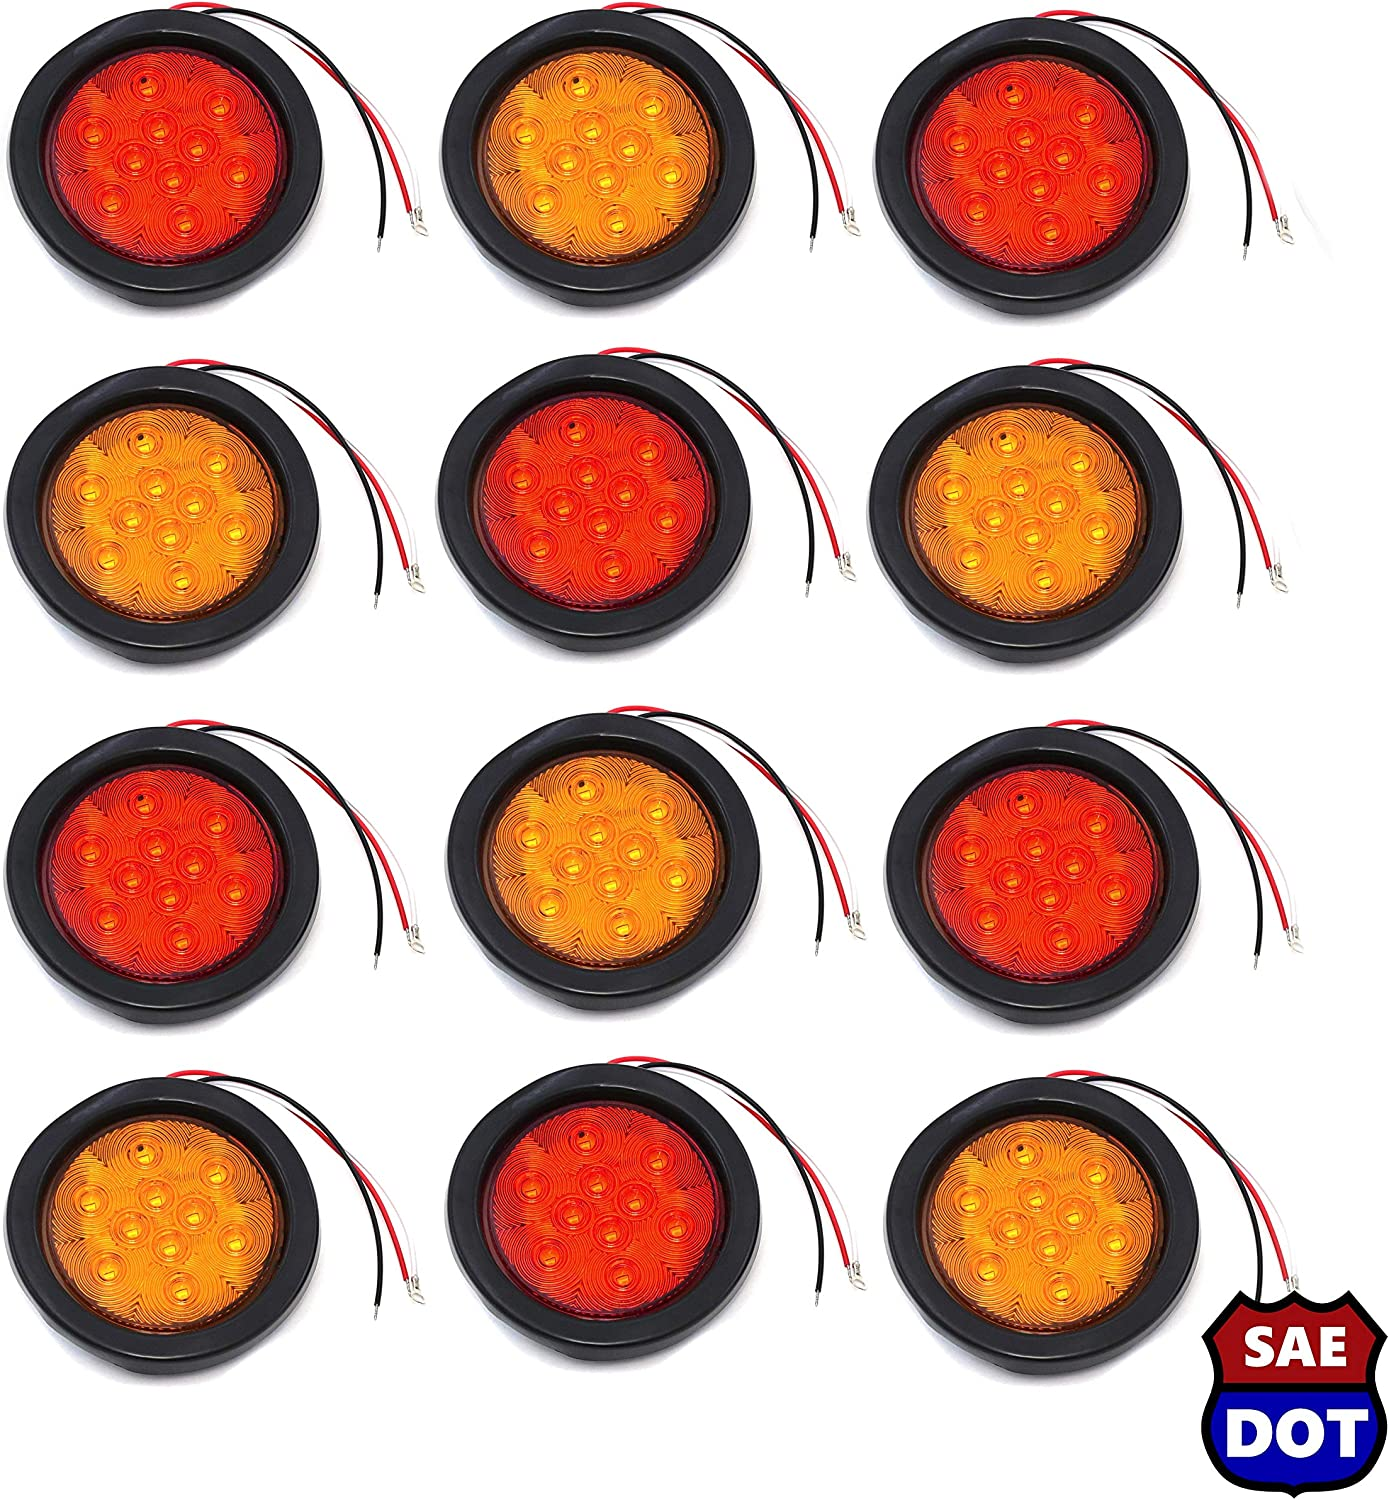 4 Inches Round 8 Red 10 LED Stop Turn Tail Light Brake Flush Truck Trailer 4 Pairs